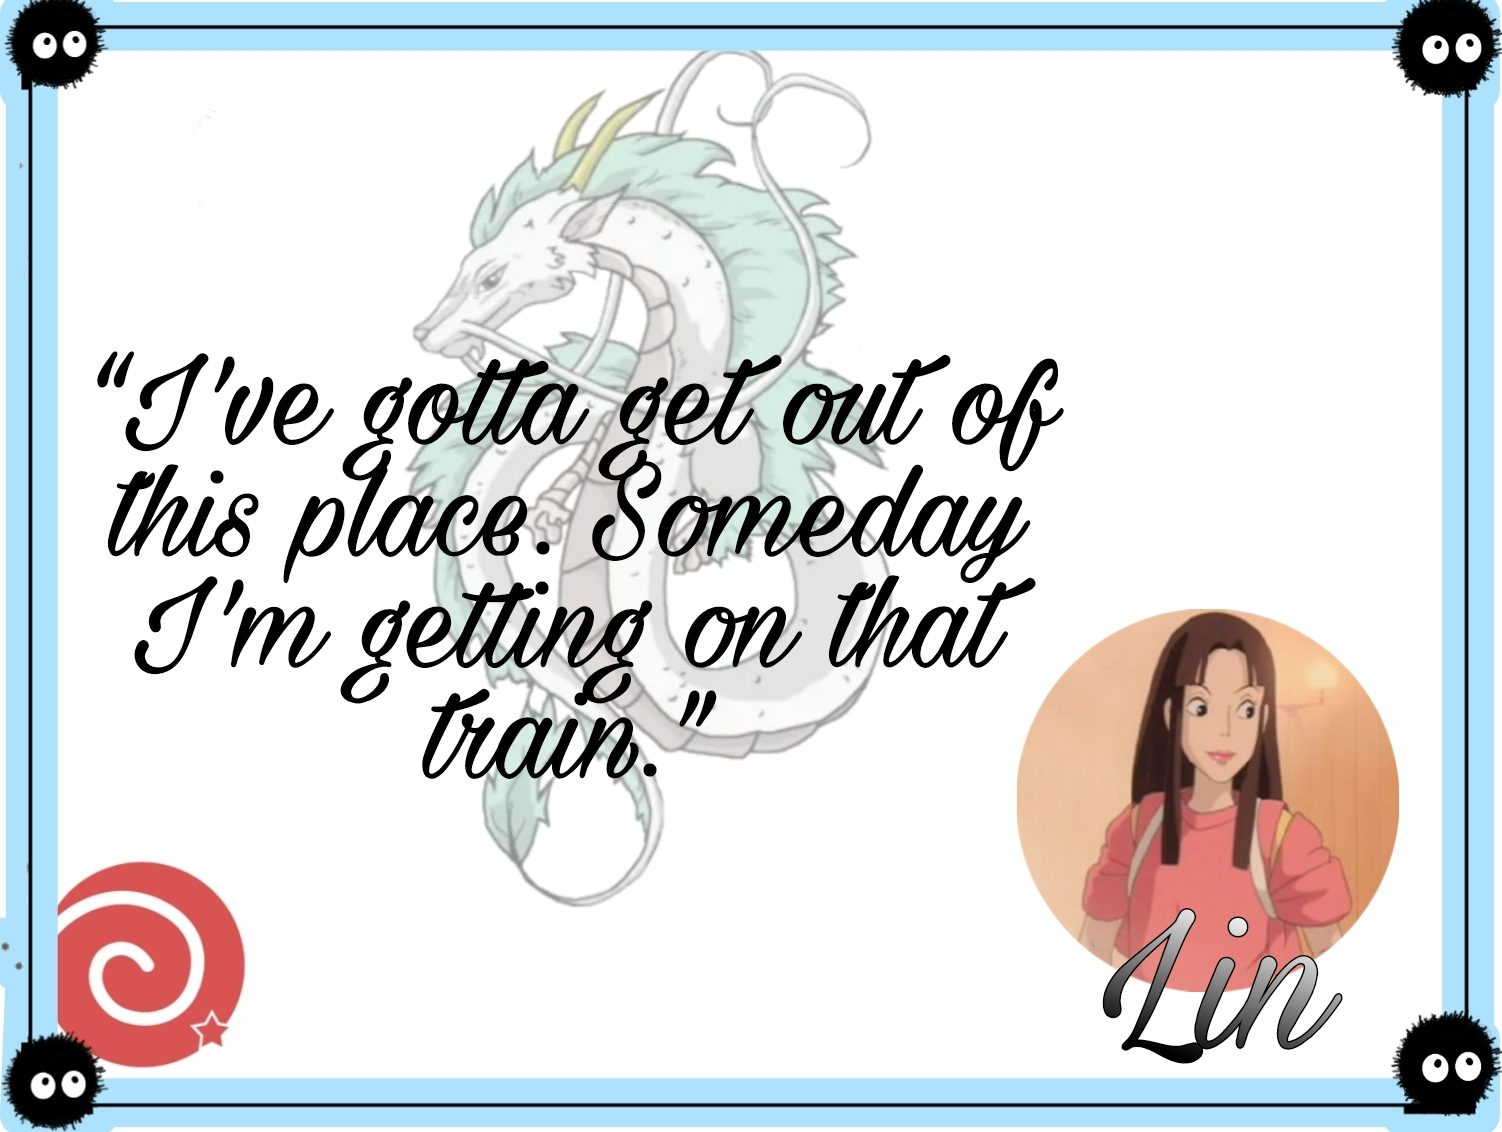 Lin quotes from Spirited Away